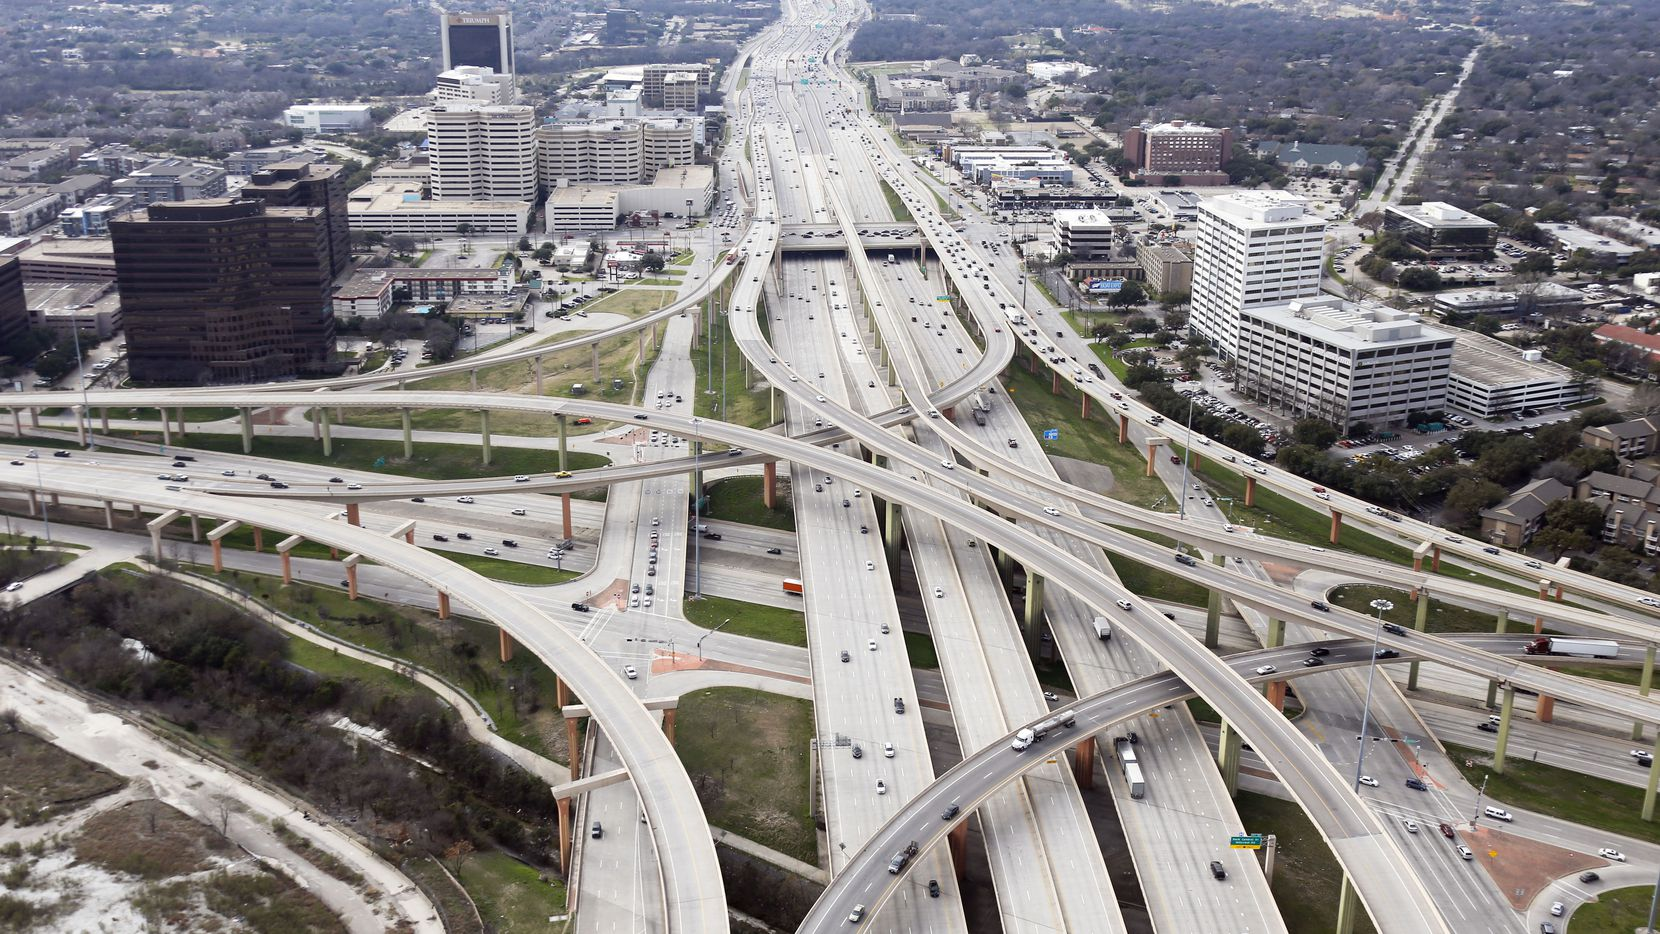 Intersection of LBJ Freeway (Interstate 635 and Central Expressway (US 75) at the High Five Interchange in Dallas on Friday, February 15, 2019.